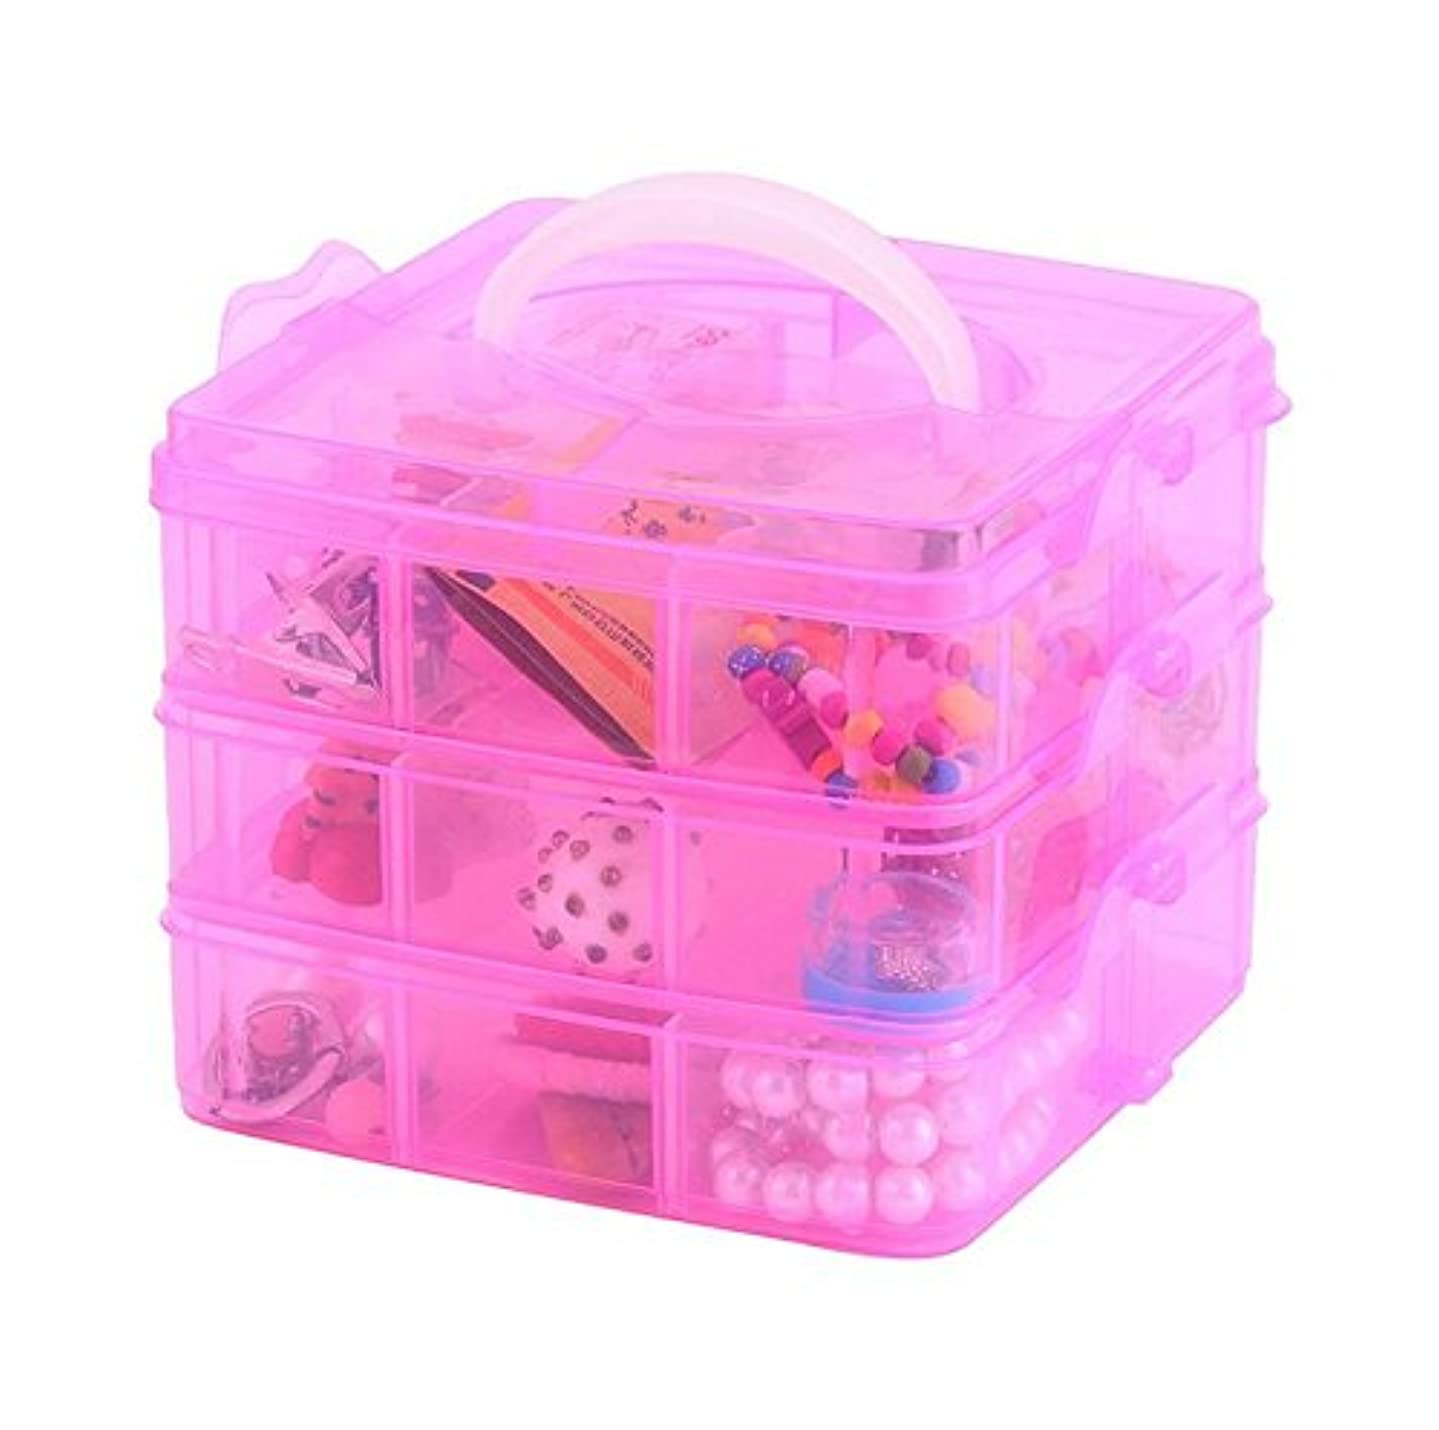 Kamay's Medium 3 Tier Stackable Adjustable Compartment Slot Bead Craft Jewellery Tool Storage Organiser Snap-lock Tray Container, with 18 Compartments, Container Box Pink